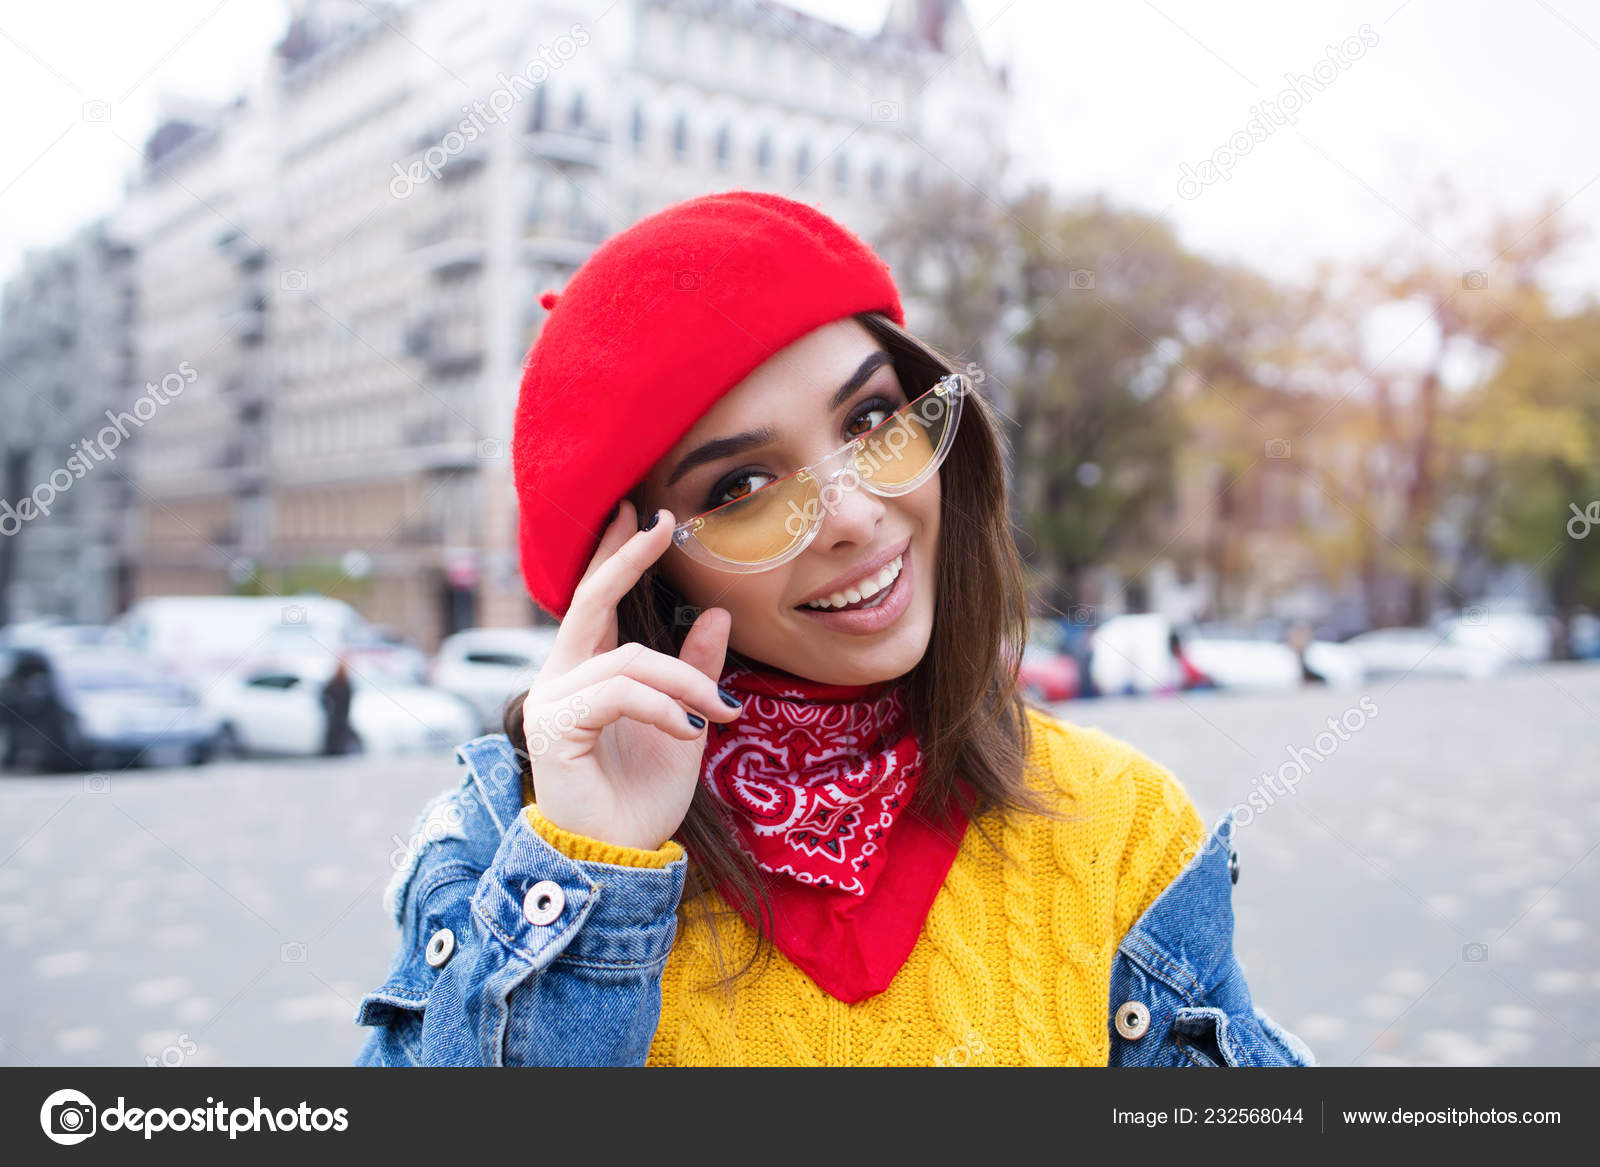 e692b0ee569 Close up shot of stylish young woman in sunglasses smiling against city  street background. Beautiful female model with copy space — Photo by ...